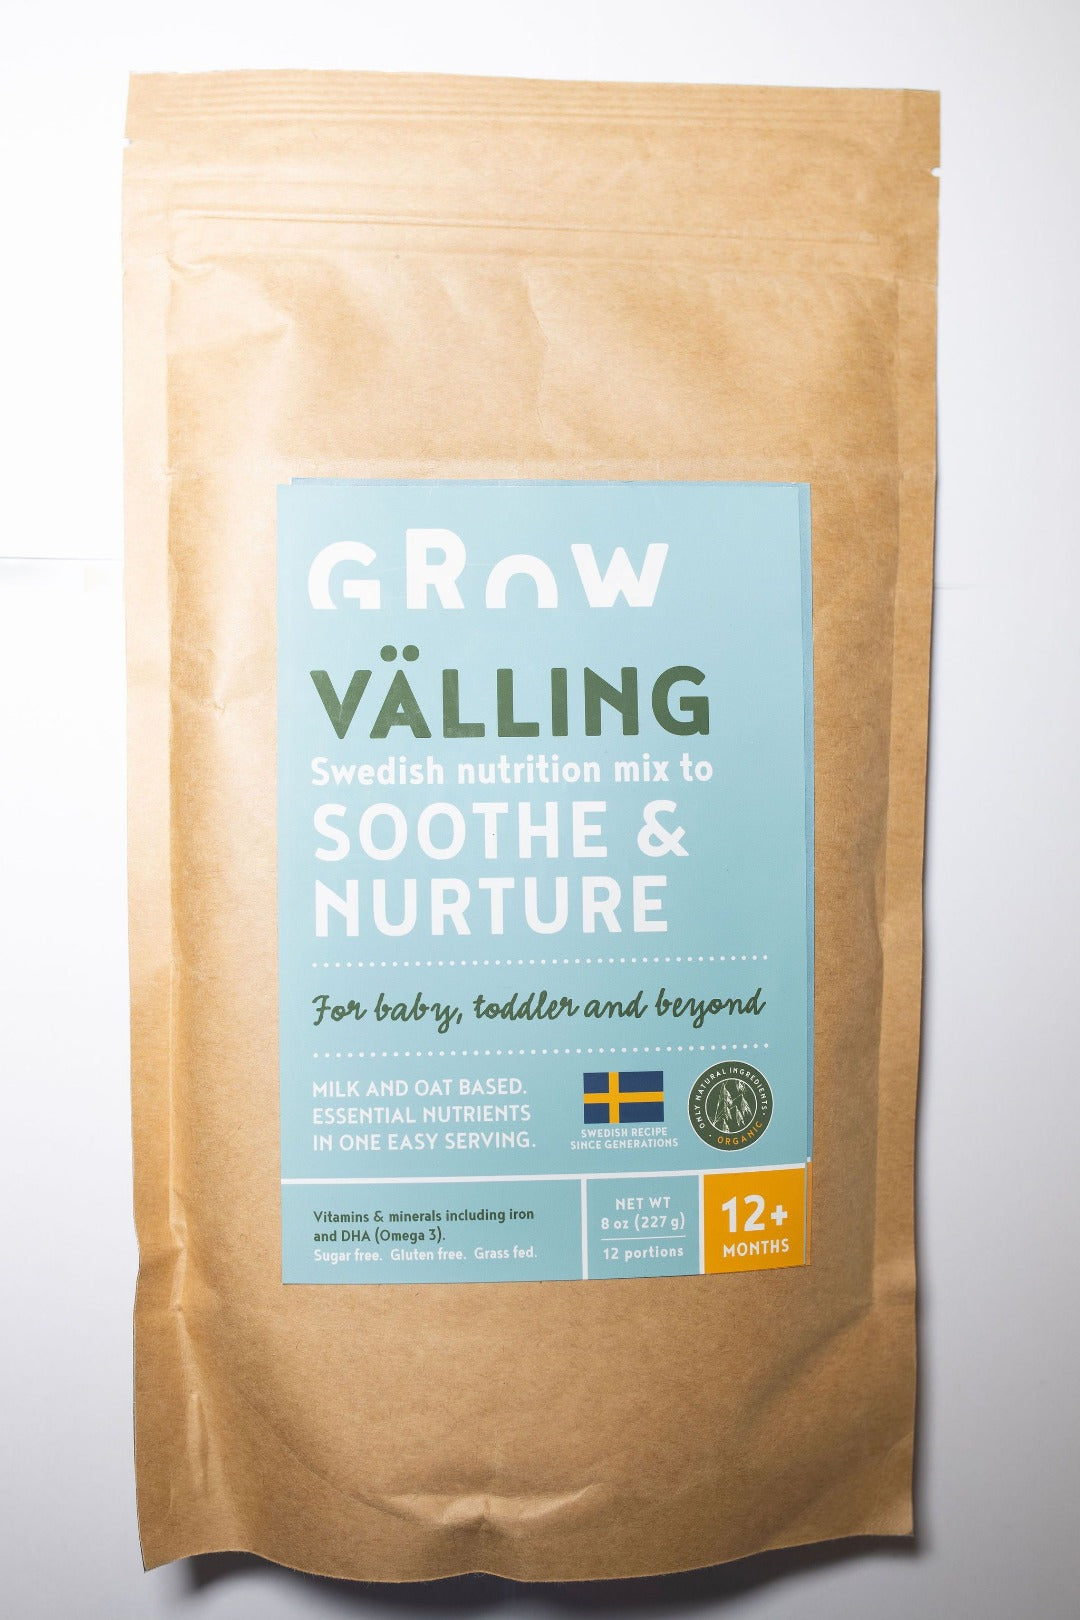 Grow Välling Baby Nutrition Mix